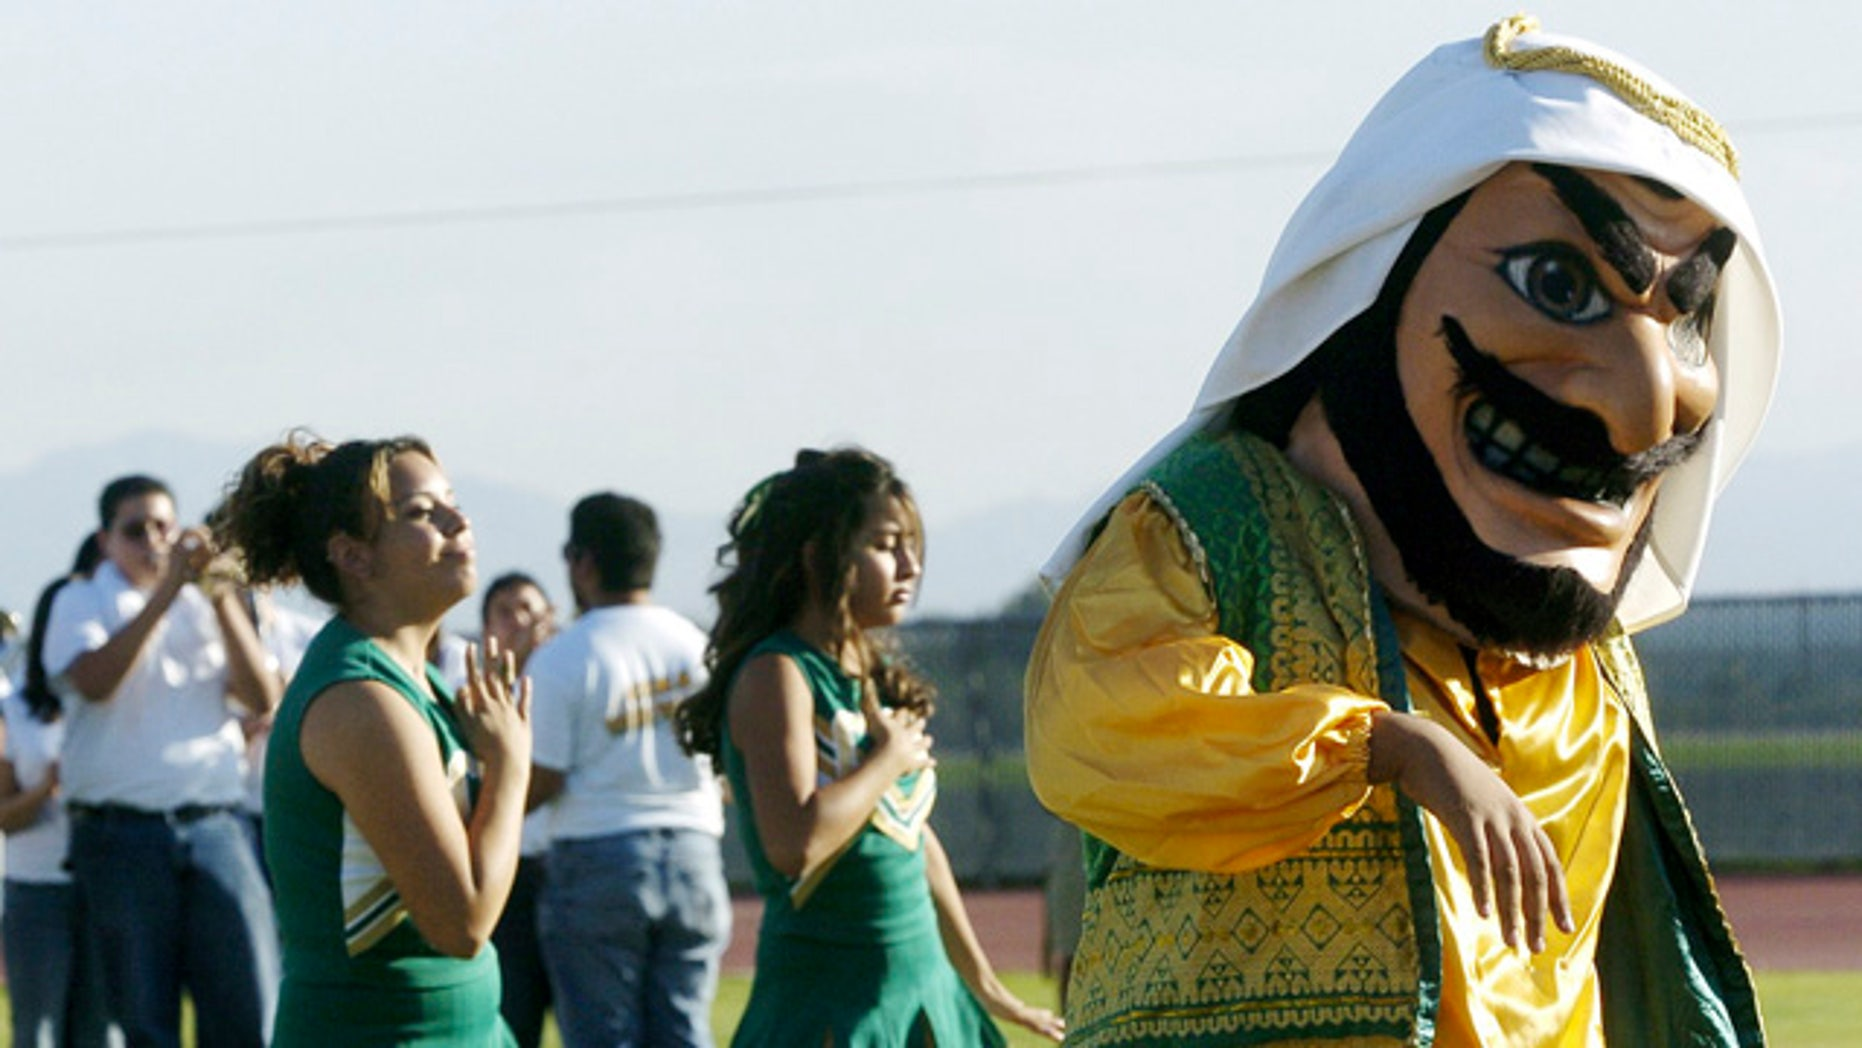 FILE - In this Nov. 10, 2005, file photo, Coachella Valley High School's mascot, 'Arab,' dances to the band during a pep rally at the school in Thermal, Calif. The hook-nosed, snarling mascot who wears a head scarf did not appear at Coachella Valley High School's season opening football game Friday. (AP Photo/The Desert Sun, Marilyn Chung, File)